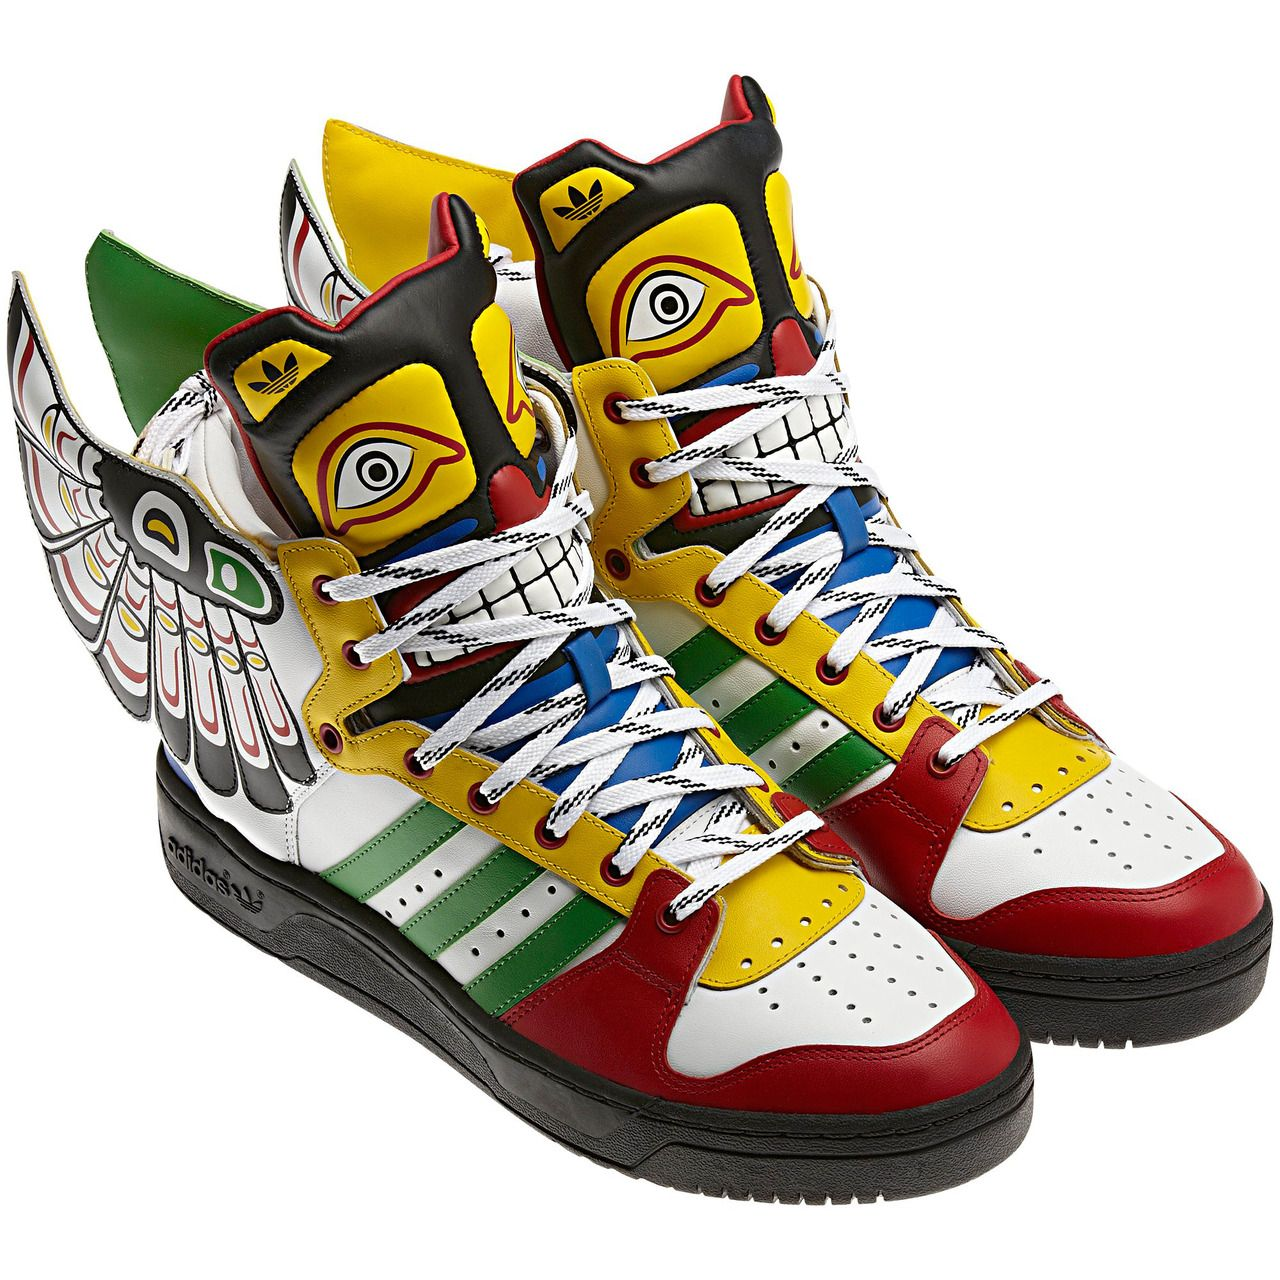 Nike Dunk High Toy Story Andy Shoes Must have <3 &#124; Awesome! &#124; Pinterest &#124; Nike  dunks, Clothes and Sneaker heads